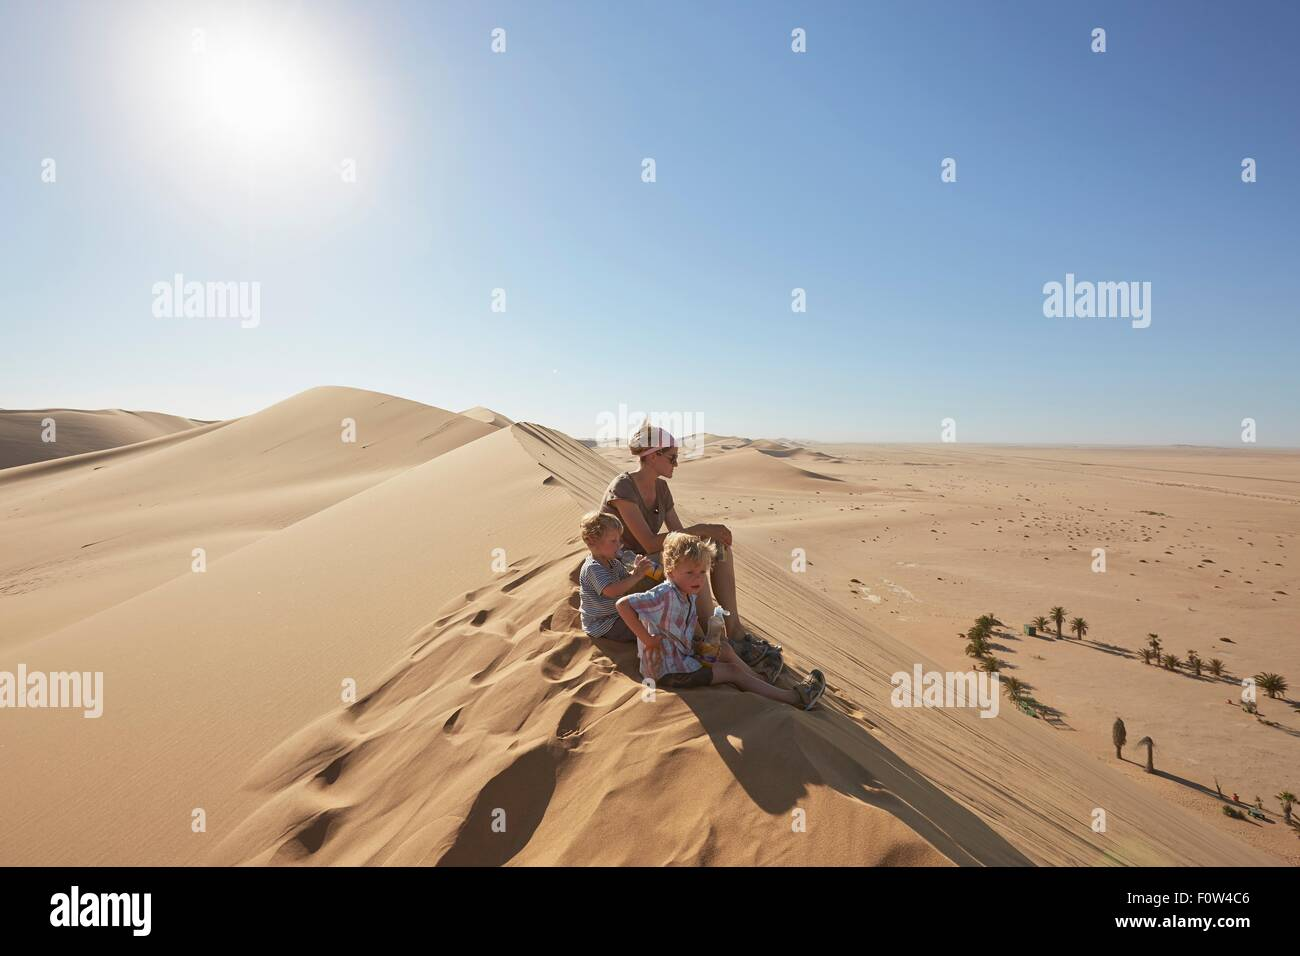 Mère et fils sitting on sand dune, Dune 7, Namib-Naukluft National Park, Afrique du Sud Photo Stock